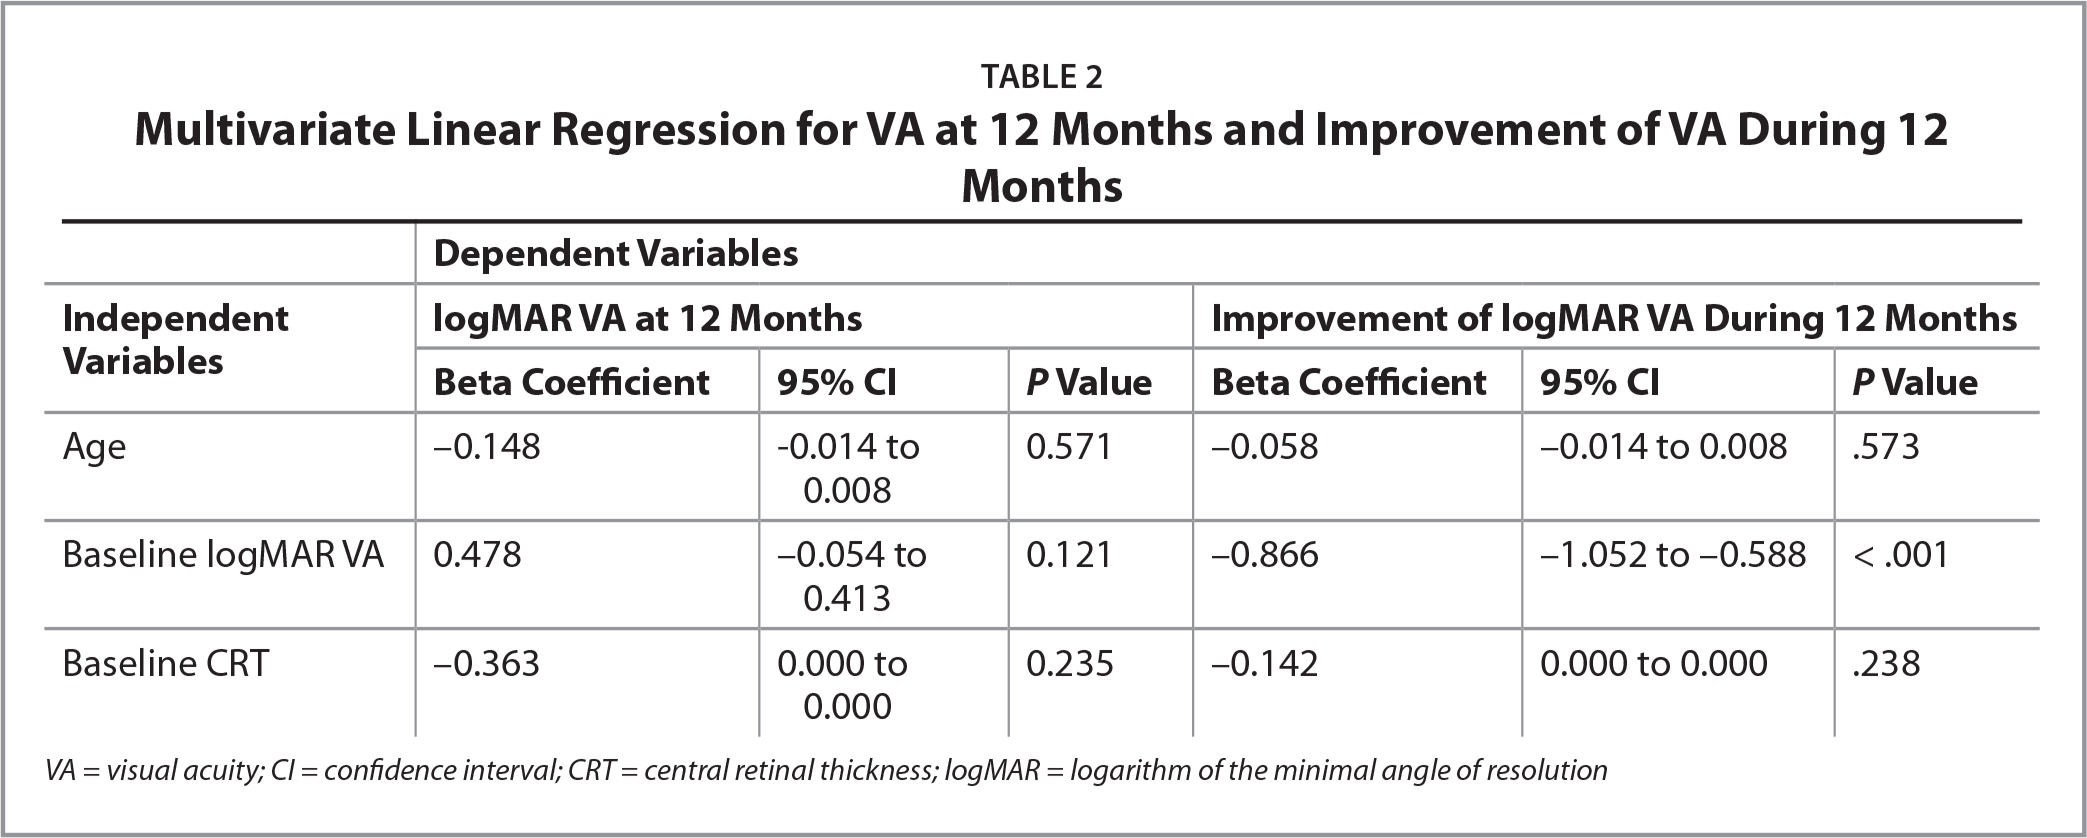 Multivariate Linear Regression for VA at 12 Months and Improvement of VA During 12 Months